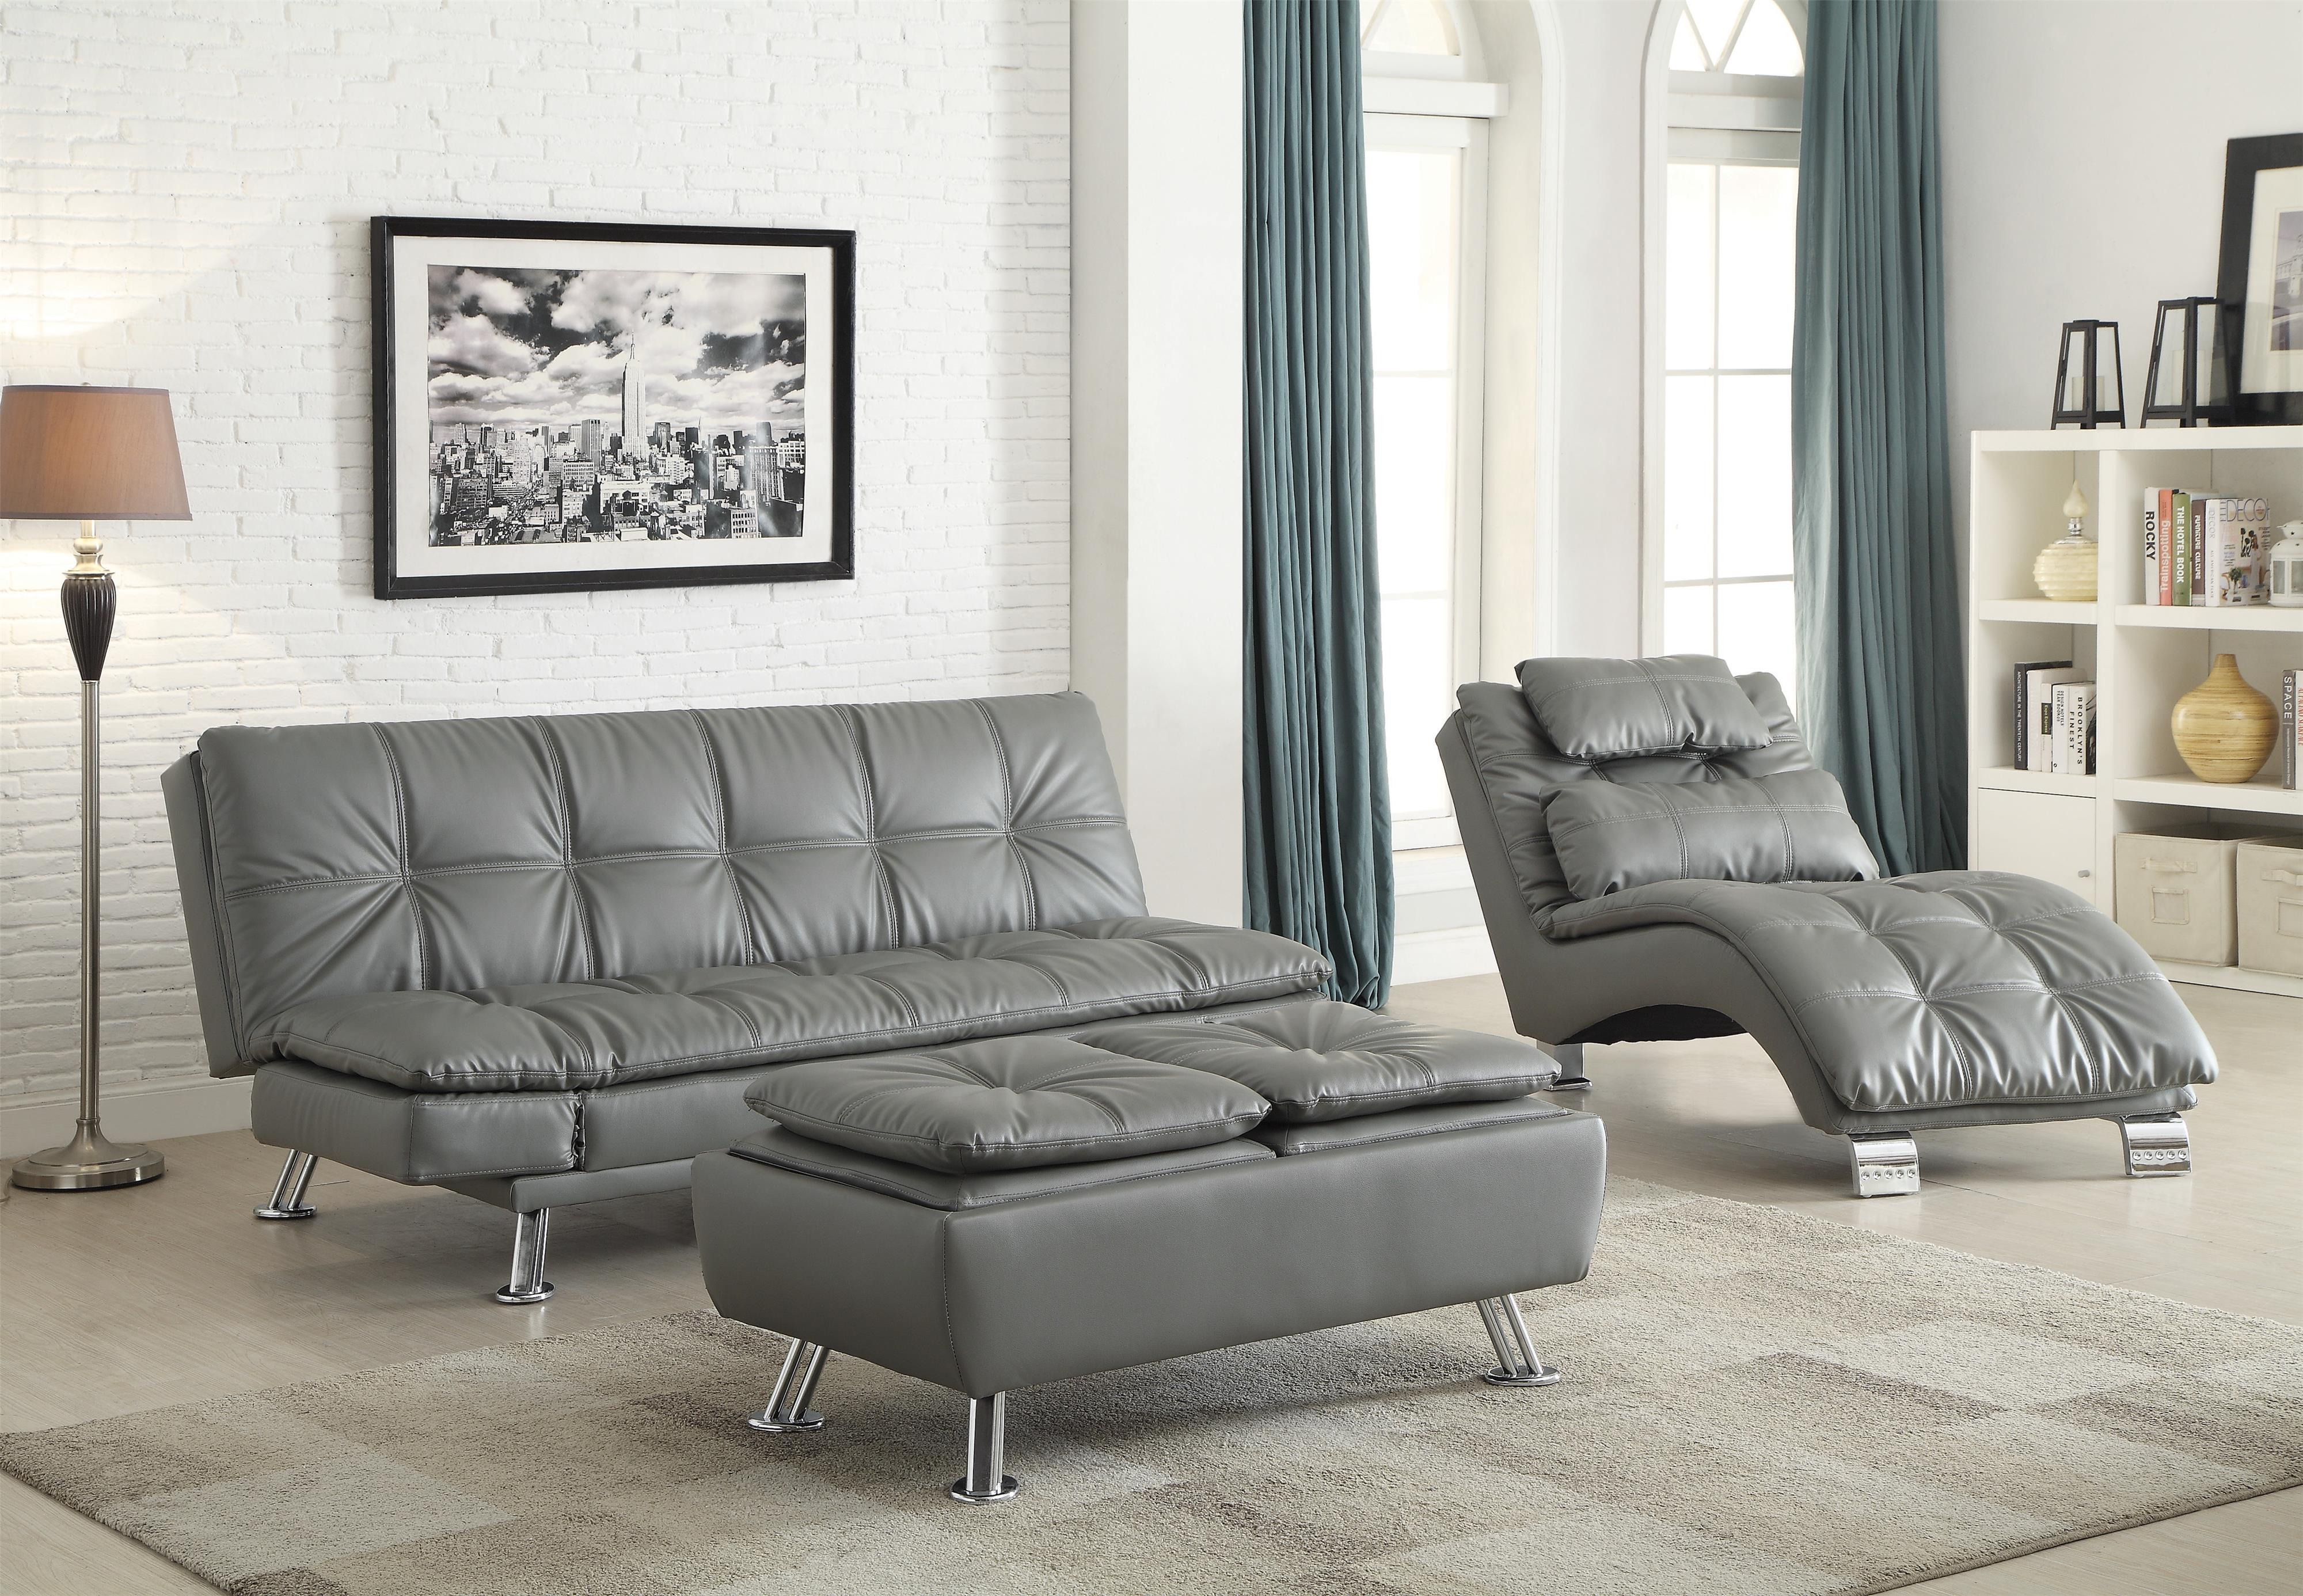 products_coaster_color_sofa beds 30021_dilleston living room group 1-b0